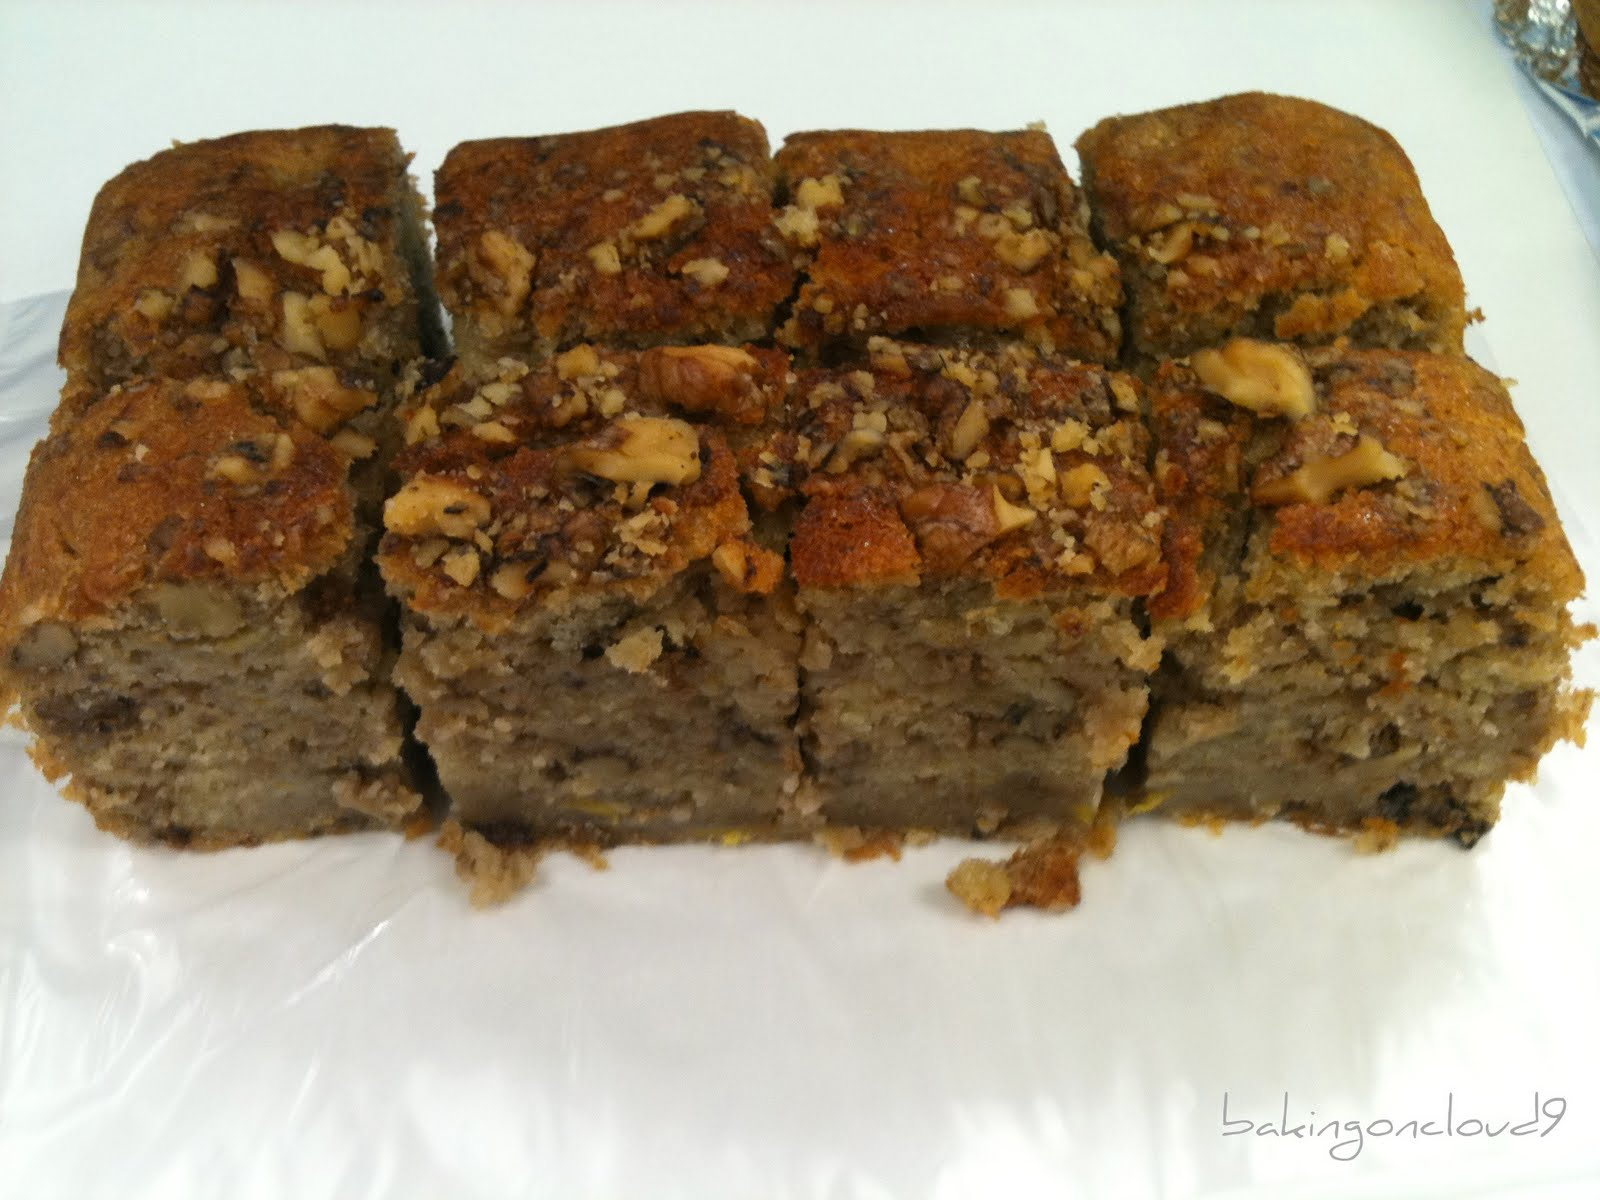 Banana Walnut Cake Recipe Joy Of Baking: Walnut Cake Recipe